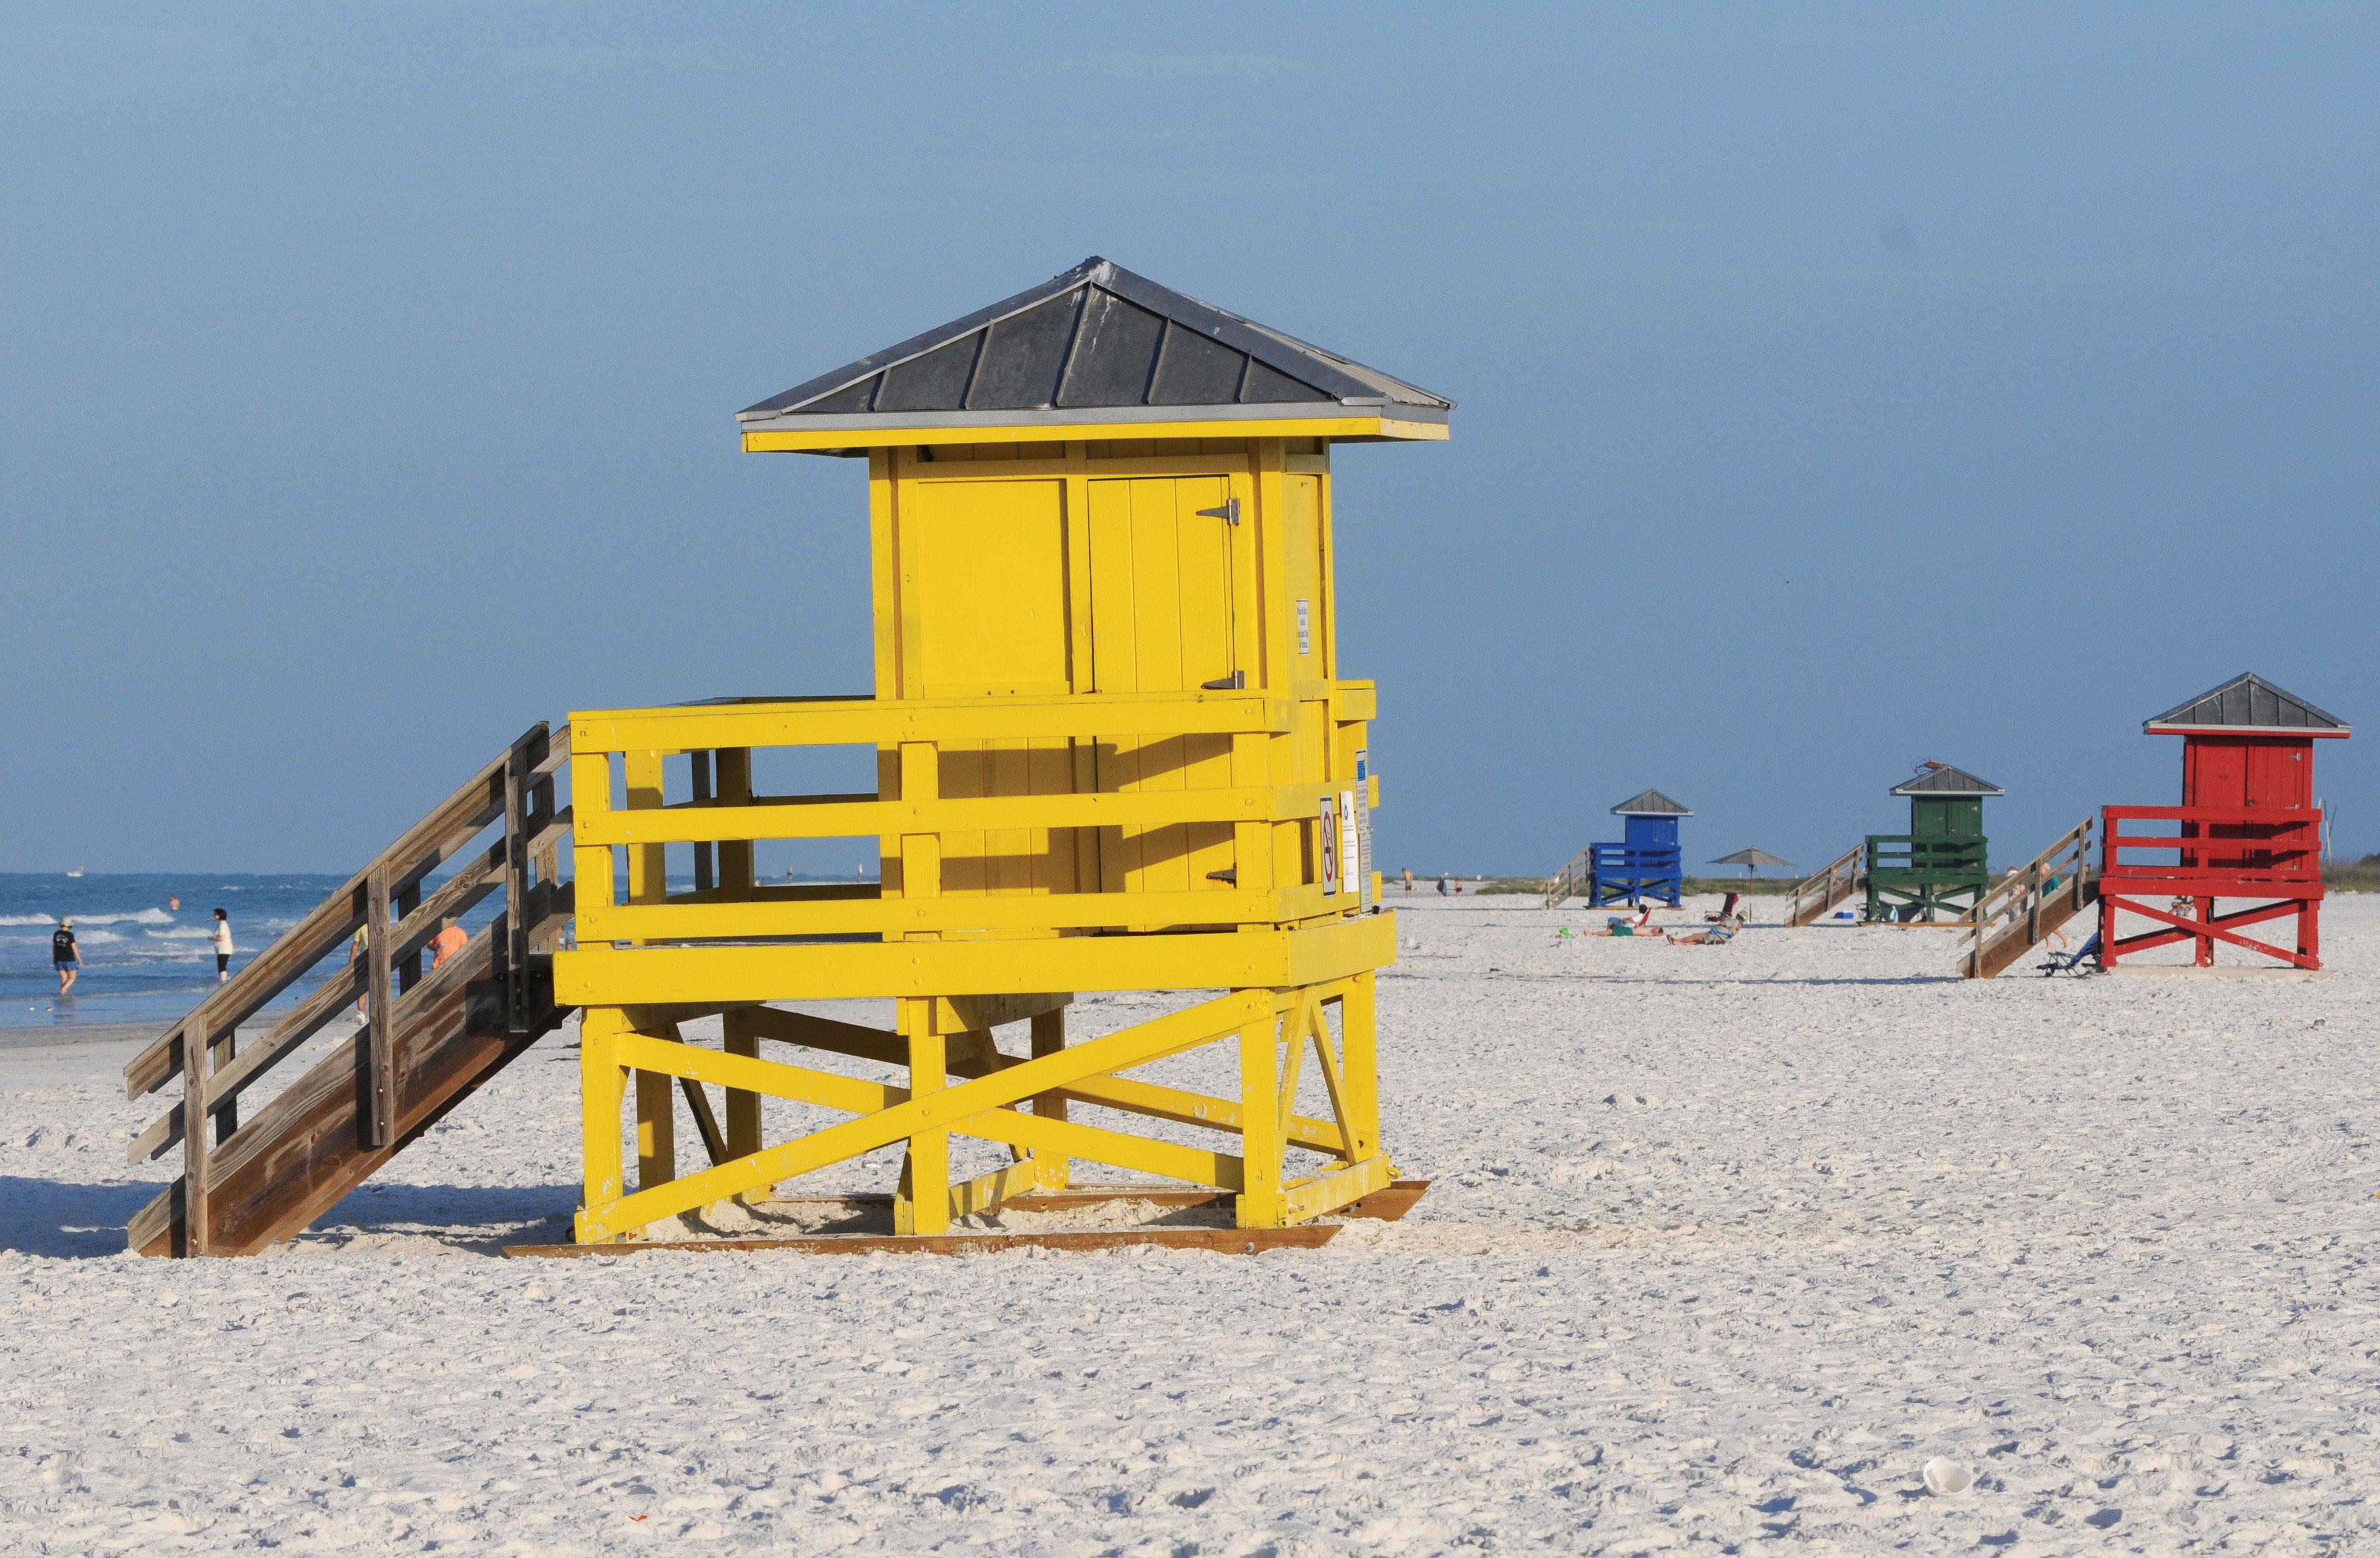 Colorful lifeguard stands add to the beauty of Siesta Key.